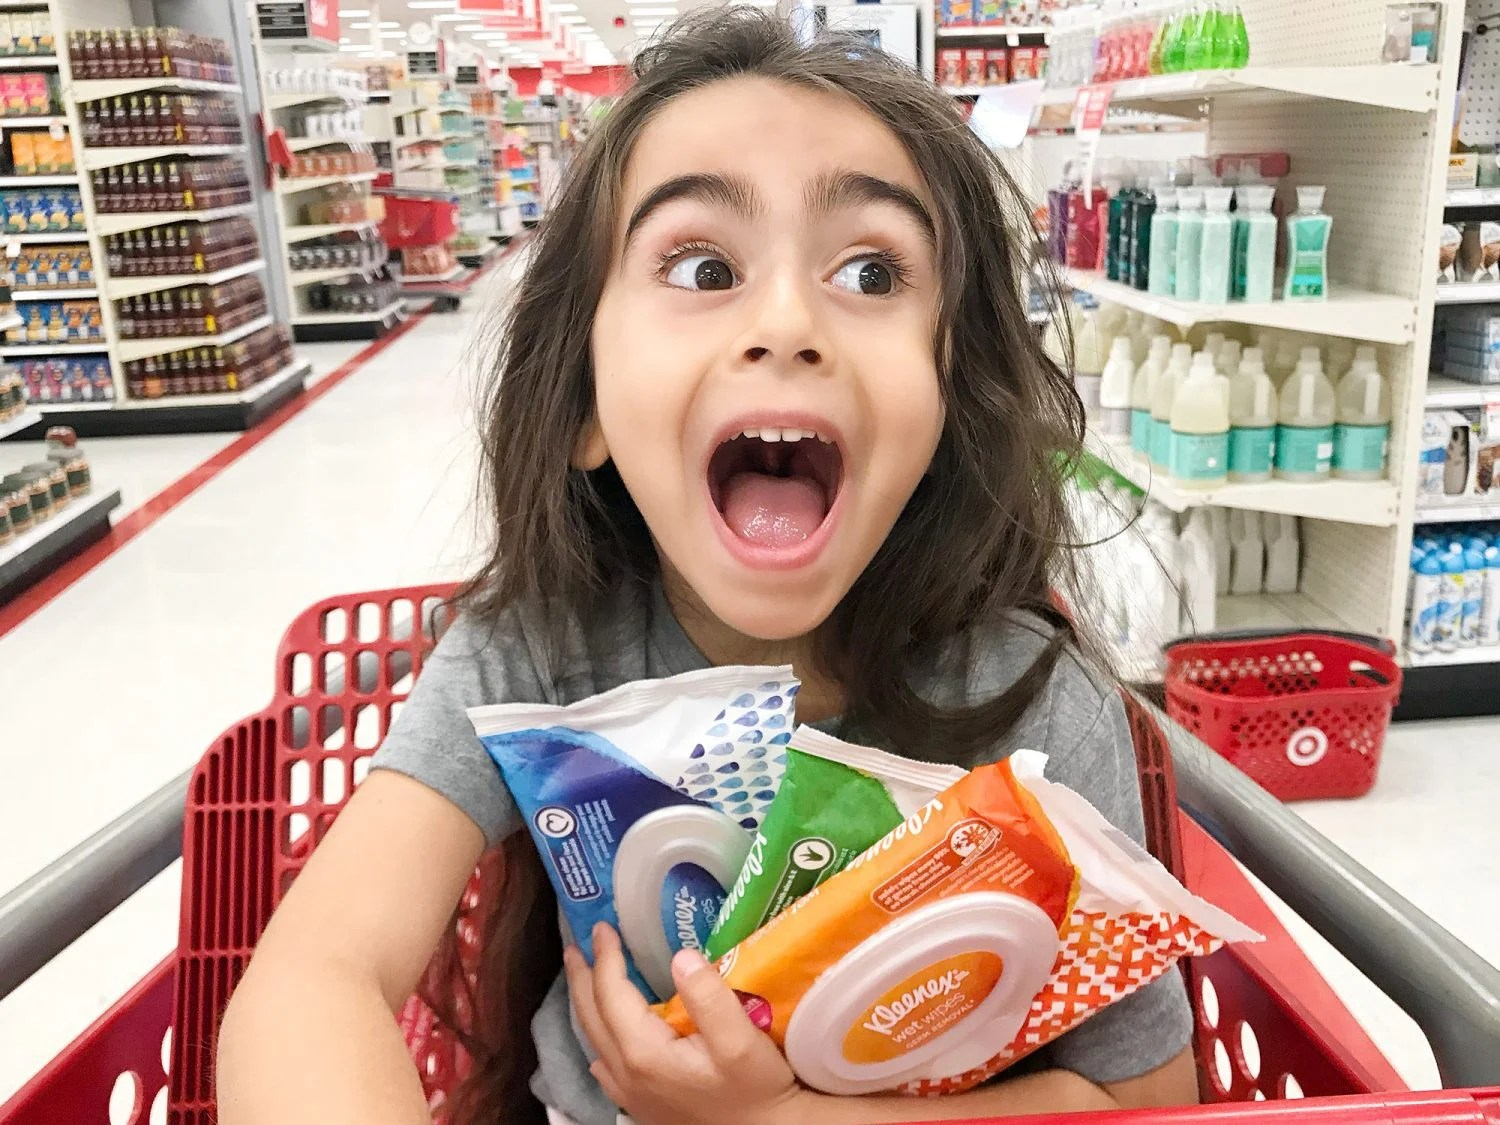 wet wipes, germs, sensitive skin, Kleenex Wet Wipes, Made for Doers, On The Go, No Harsh Chemicals, Kleenex, Target, staying healthy, 2018, mom blogger, blog, healthy lifestyle, healthy blogger